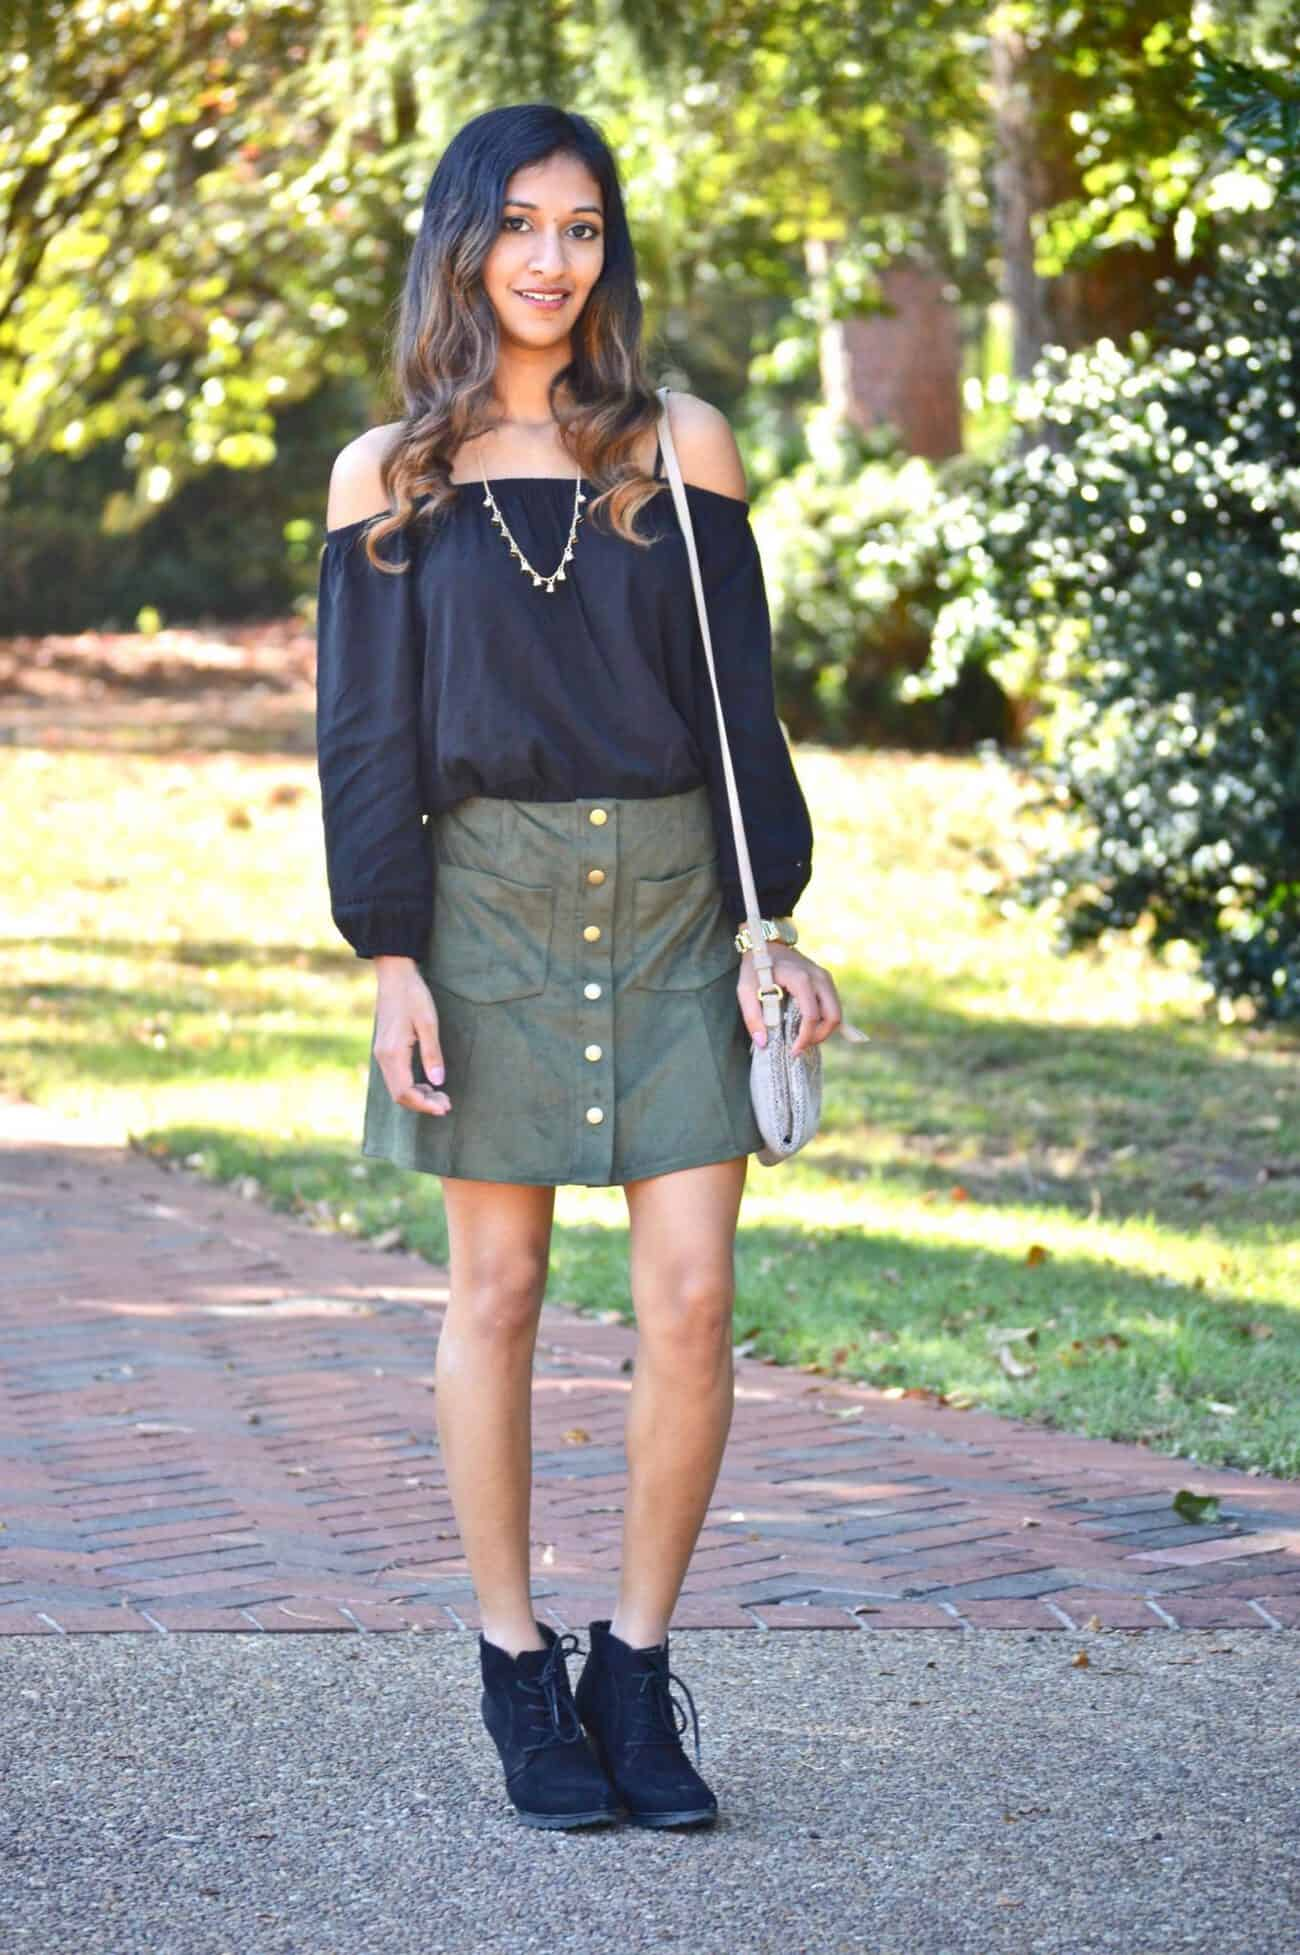 Forest Green Suede Skirt :: Retro Style - An Unblurred Lady